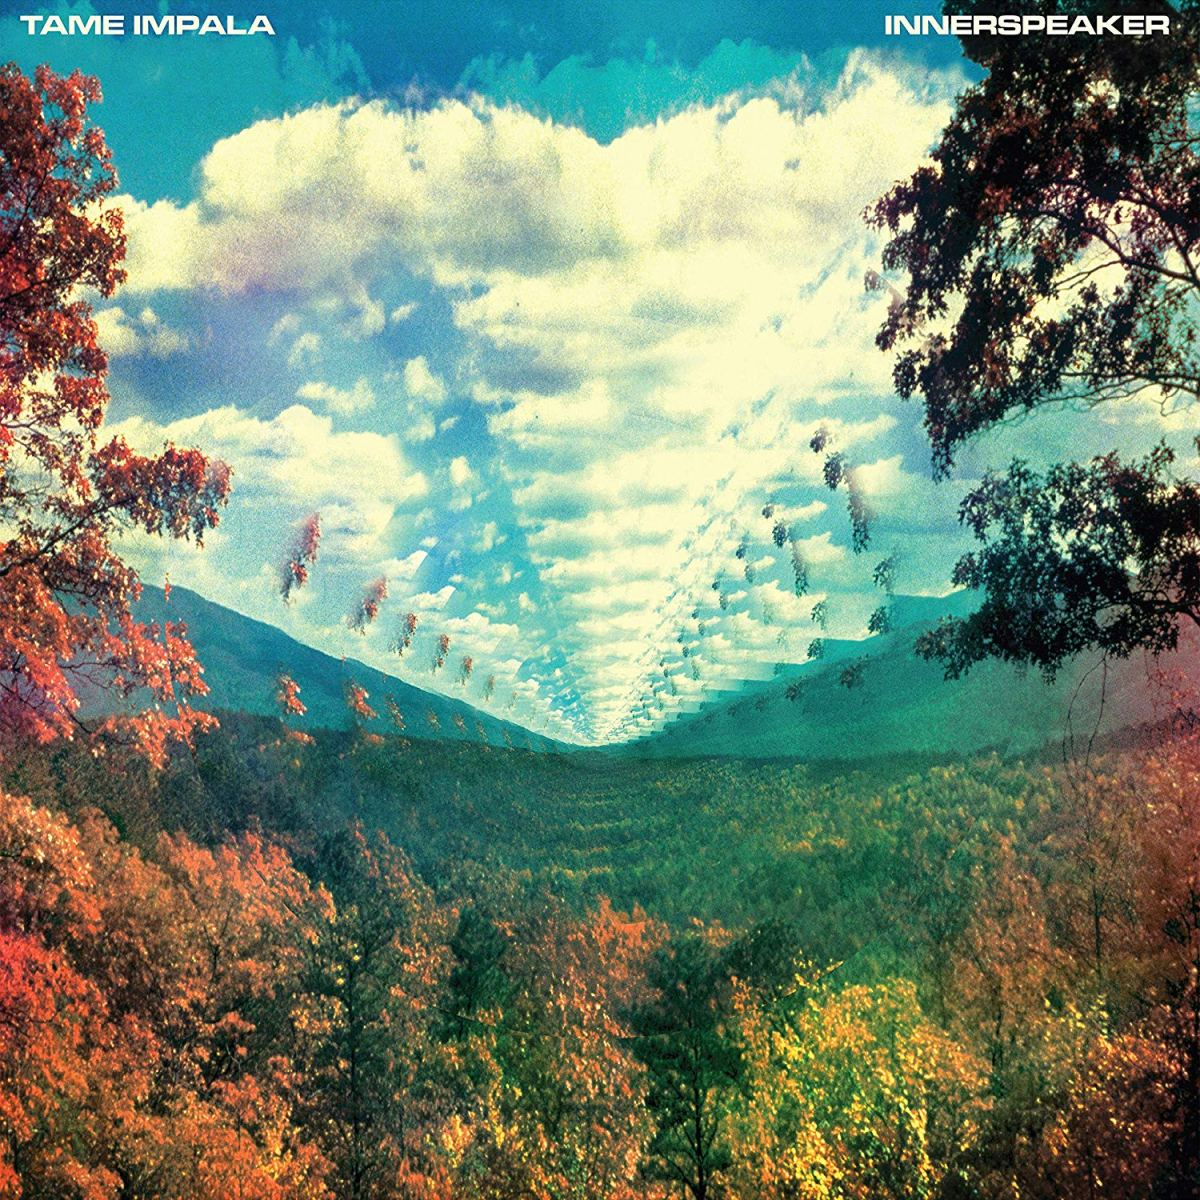 Innerspeaker, Tame Impala's first record